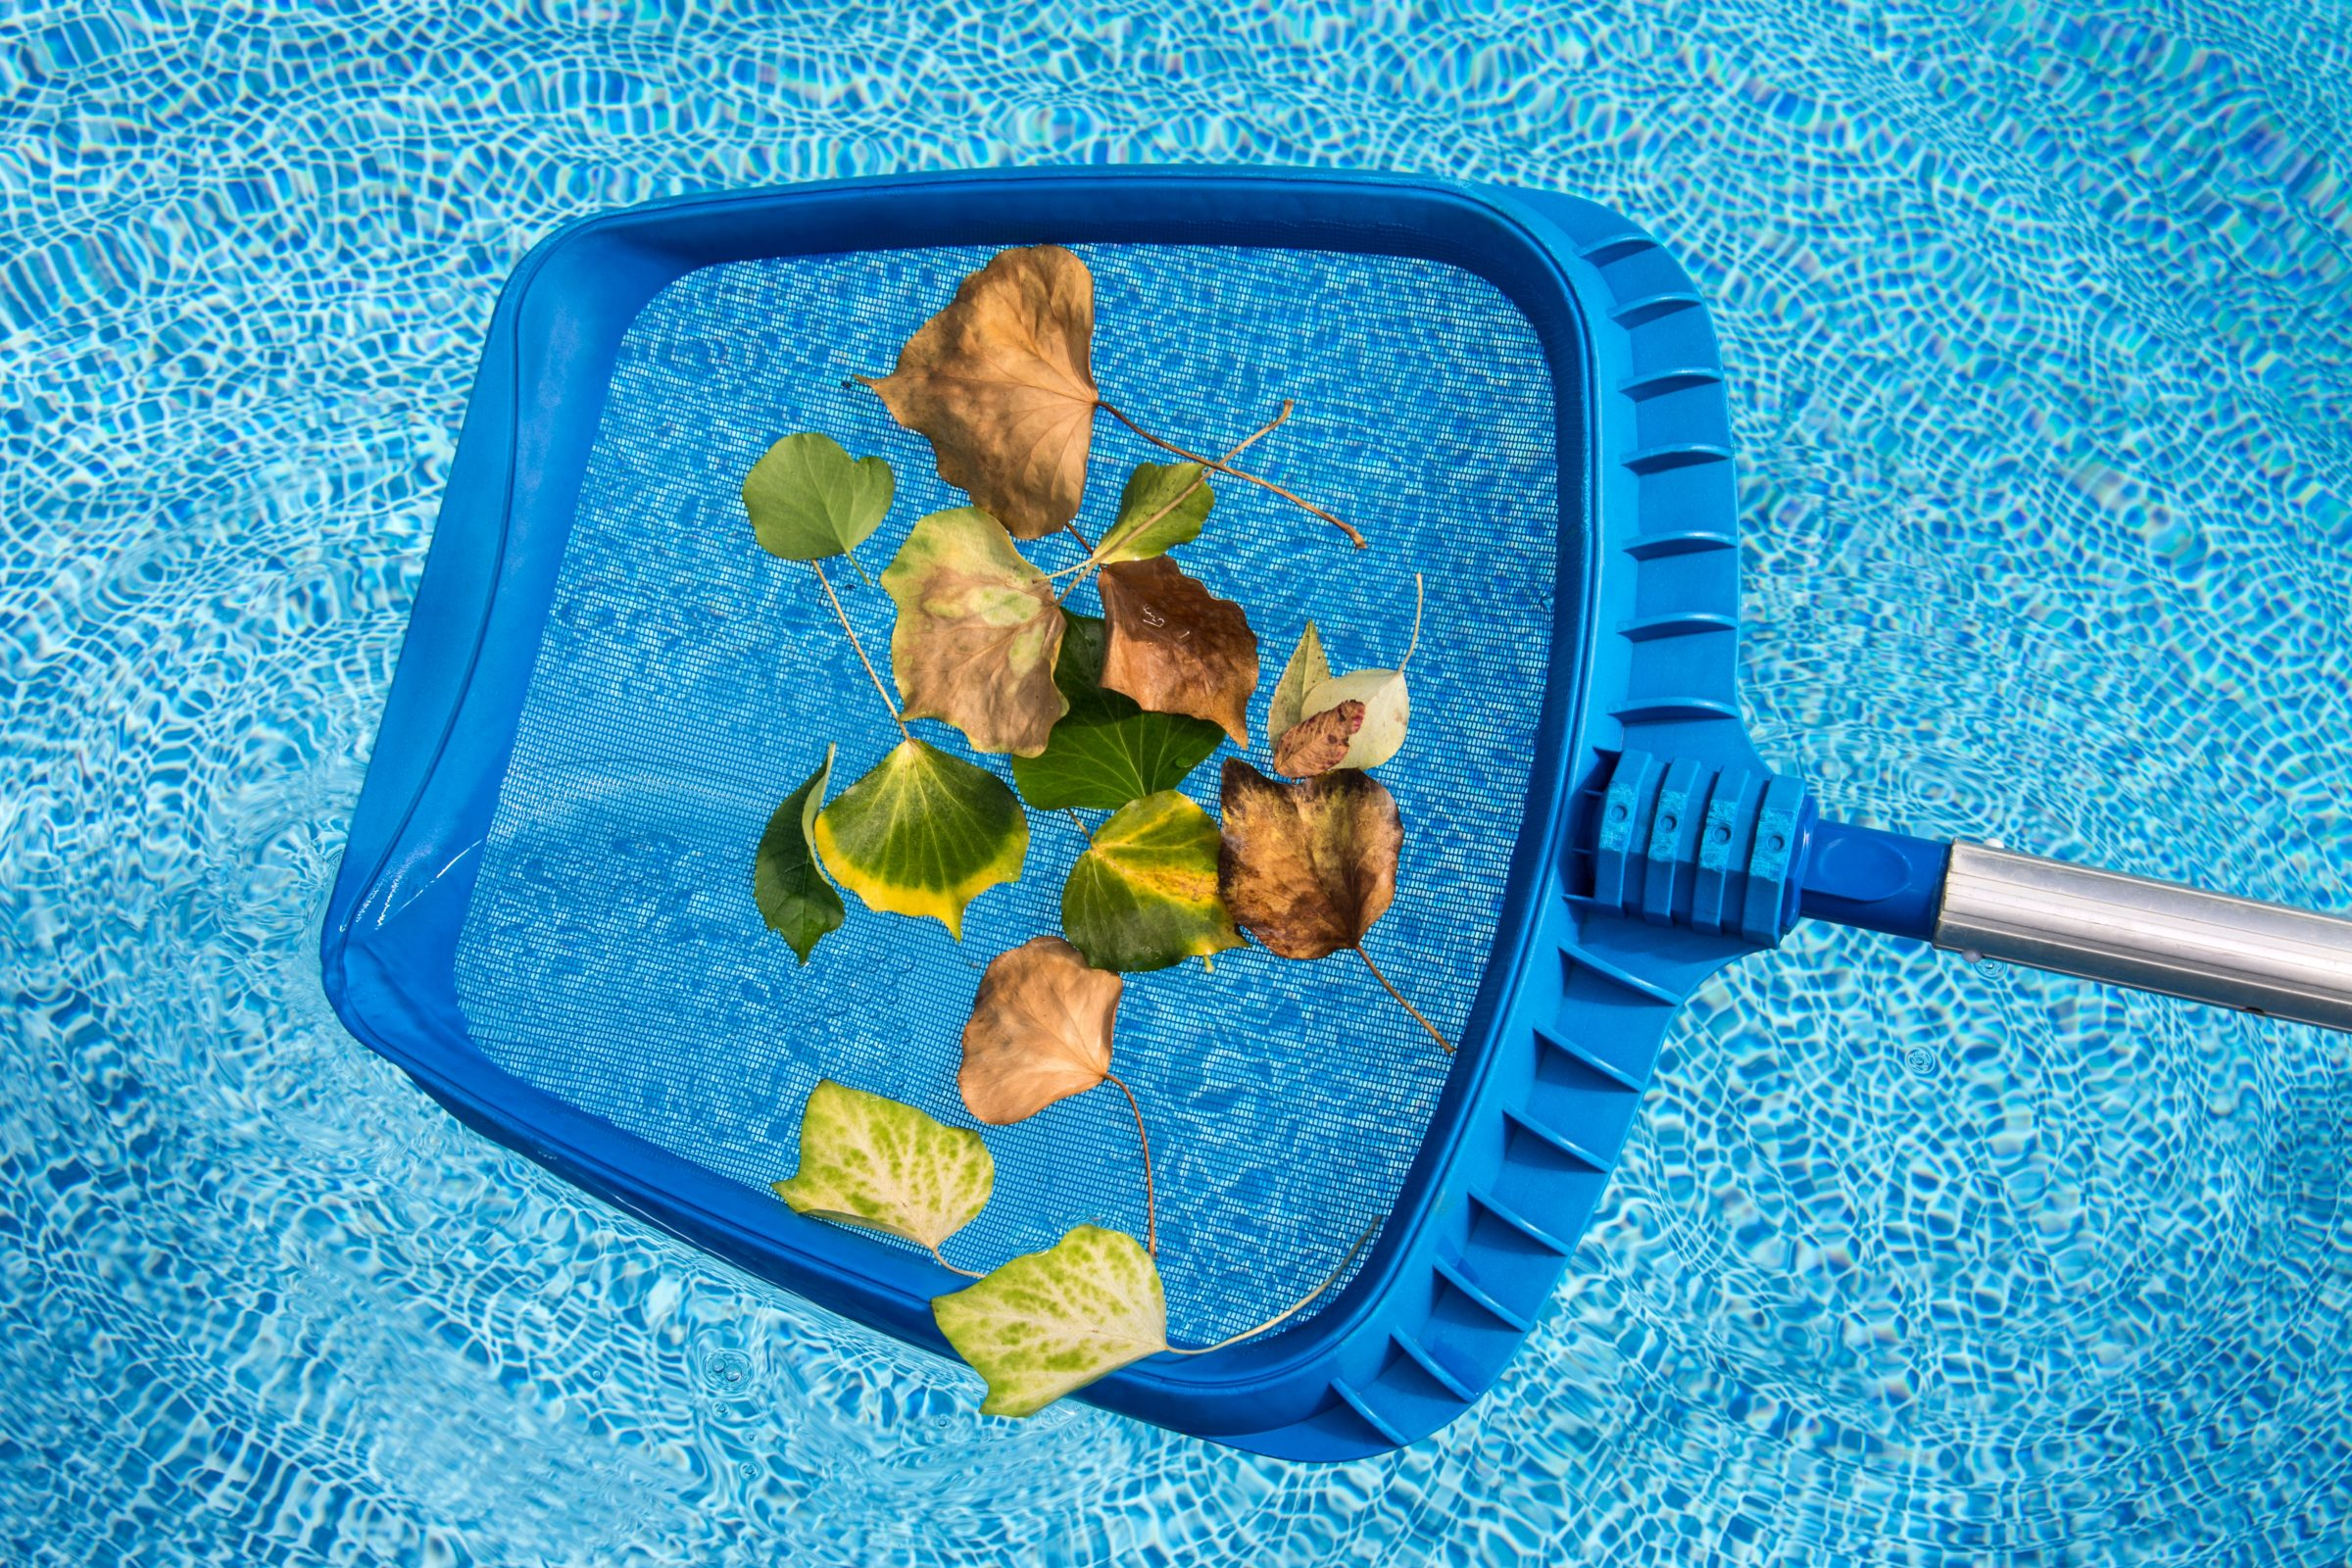 cleaning leaves from the swimming pool 6R8ZY67